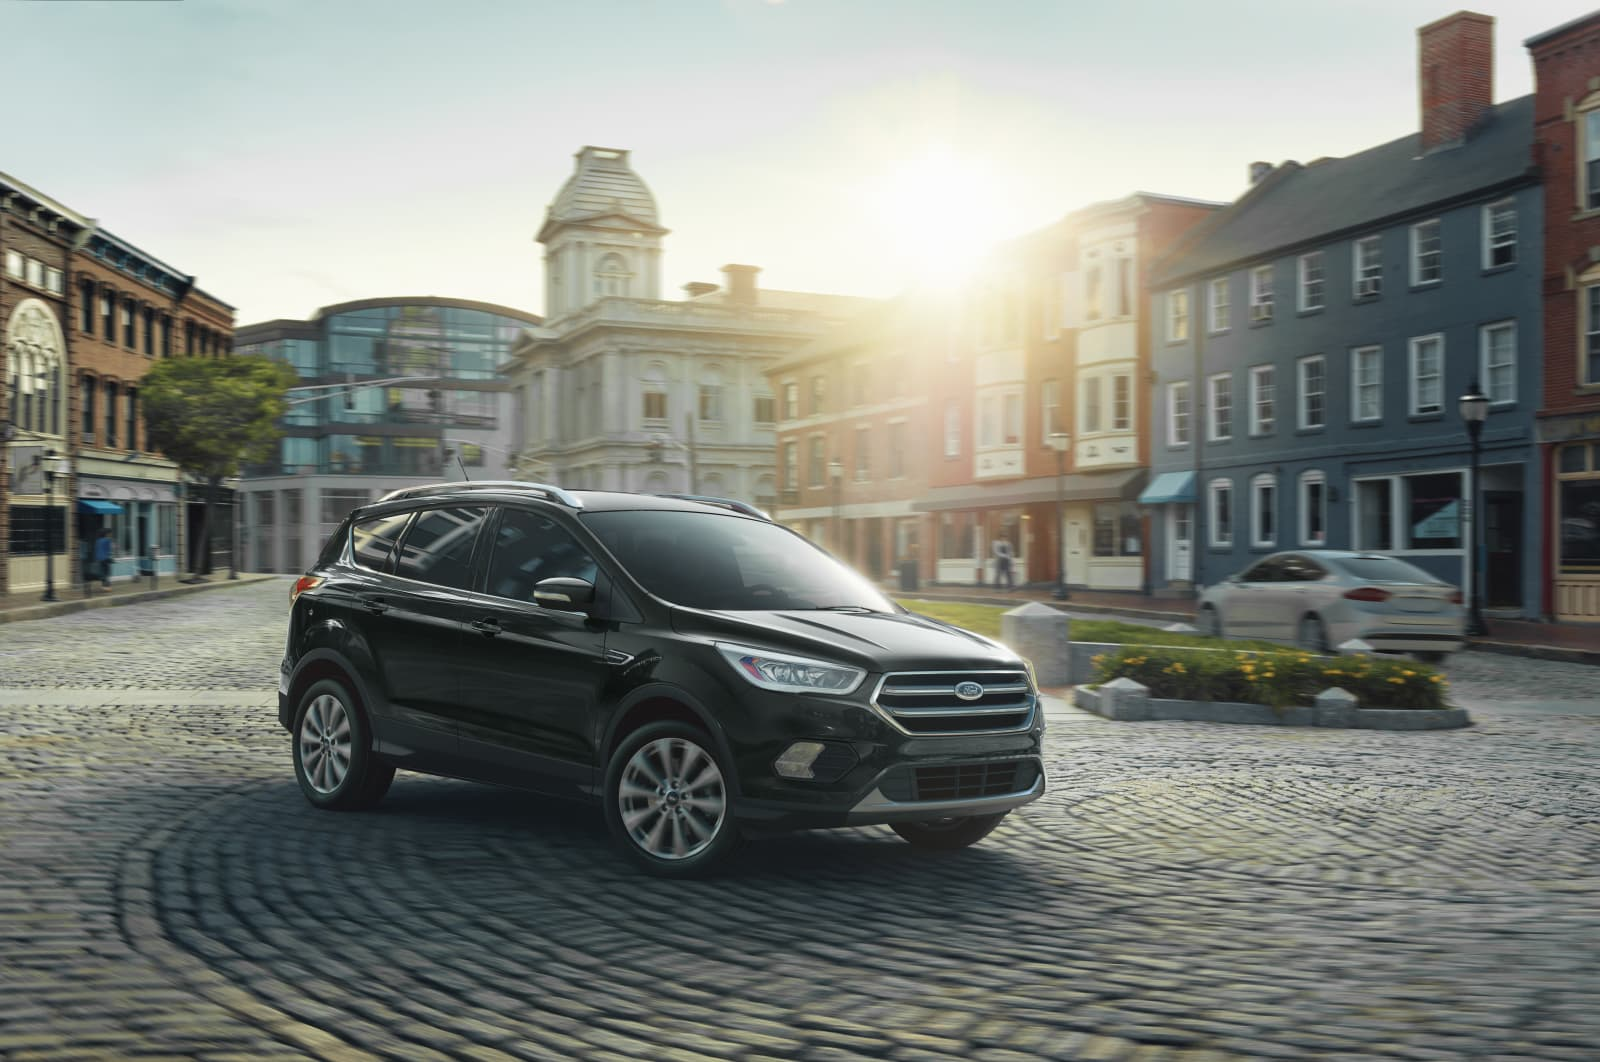 2019 Ford Escape Model Research | J C  Lewis Ford Savannah